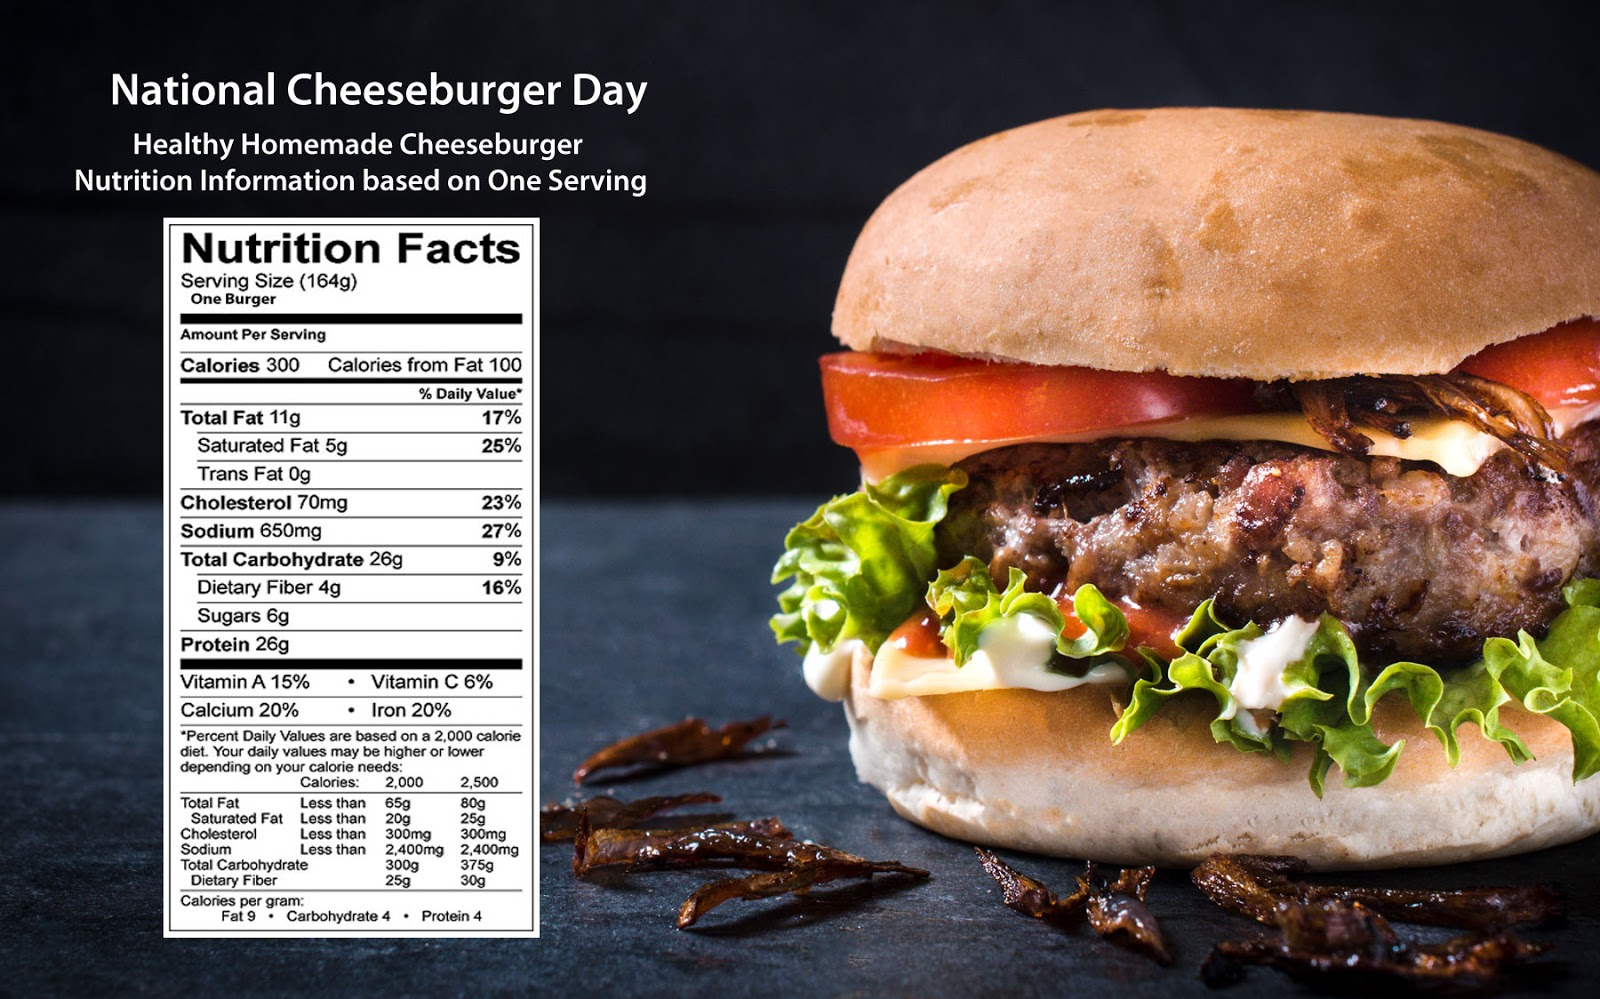 Cheeseburger Nutrition: Calories and Health Benefits